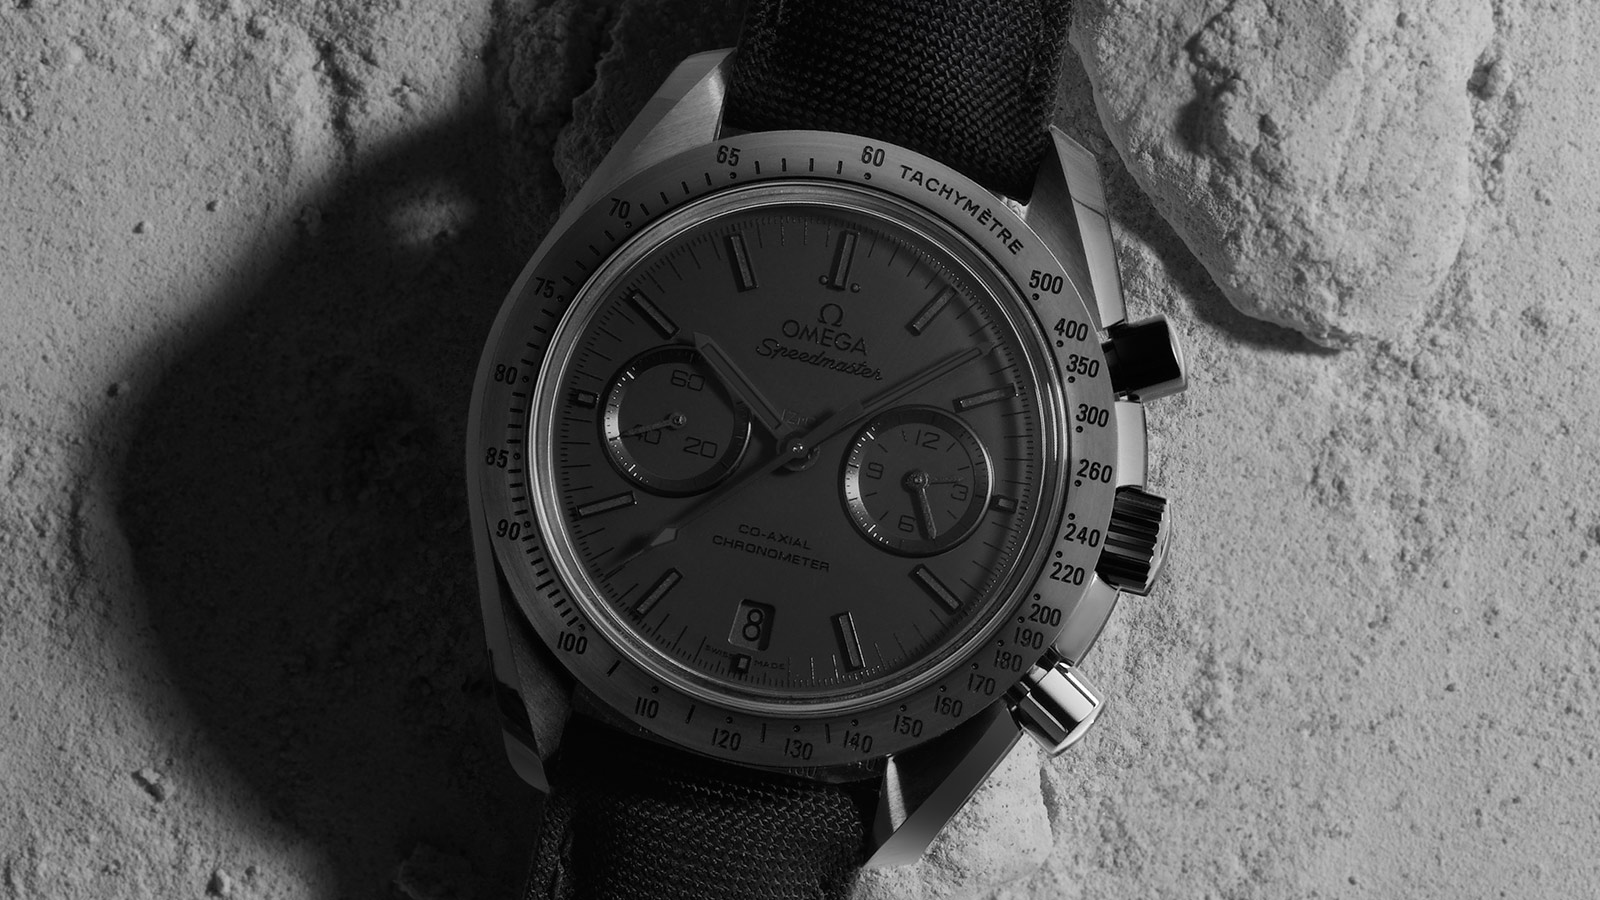 Speedmaster Moonwatch Moonwatch Omega Co‑Axial Chronograph 44.25 mm - 311.92.44.51.01.005 - View 1